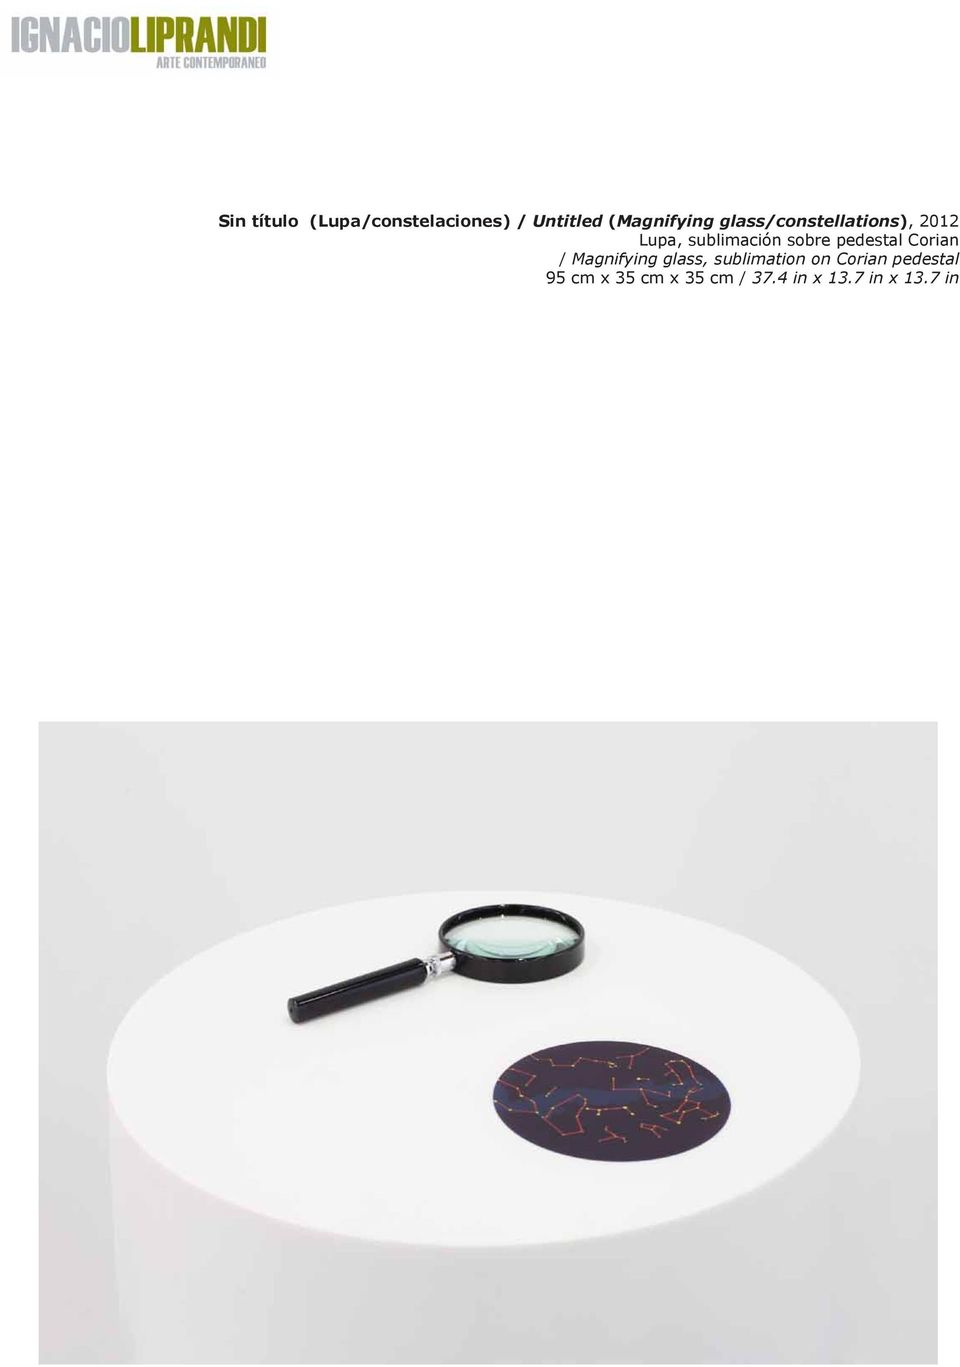 pedestal Corian / Magnifying glass, sublimation on